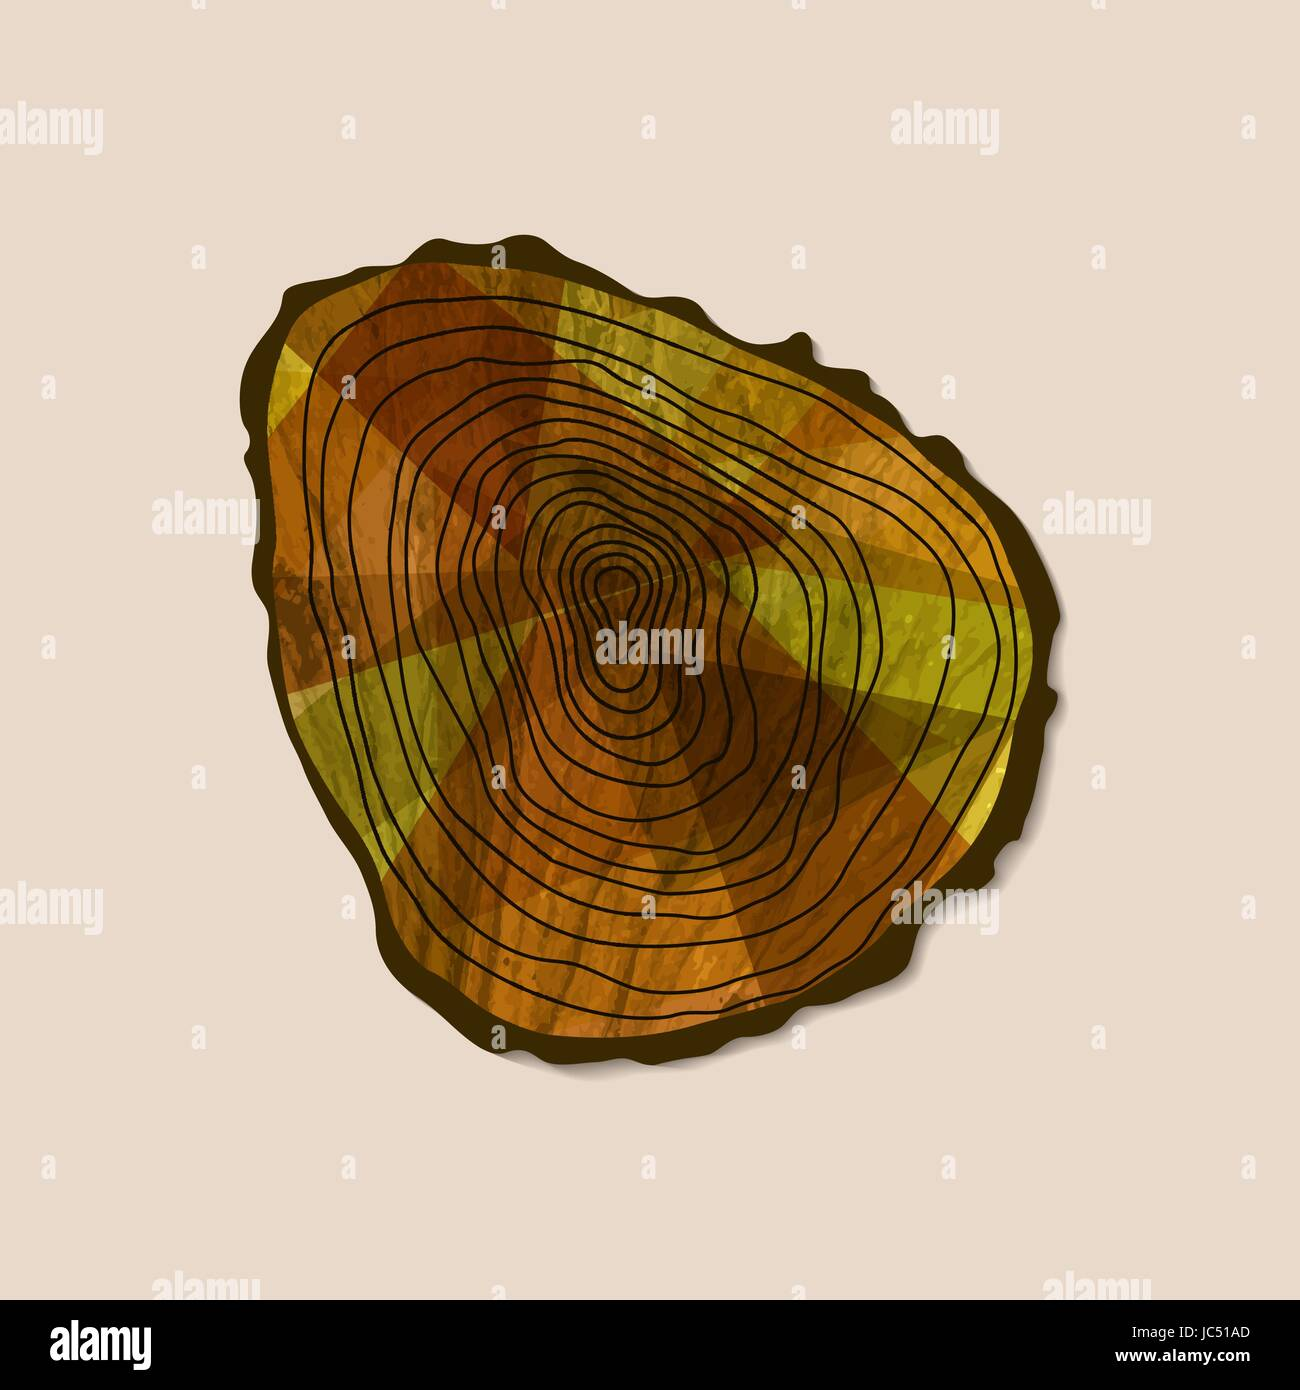 Cut tree trunk art with wood texture from top view. Concept illustration for environment care or nature help project. - Stock Image